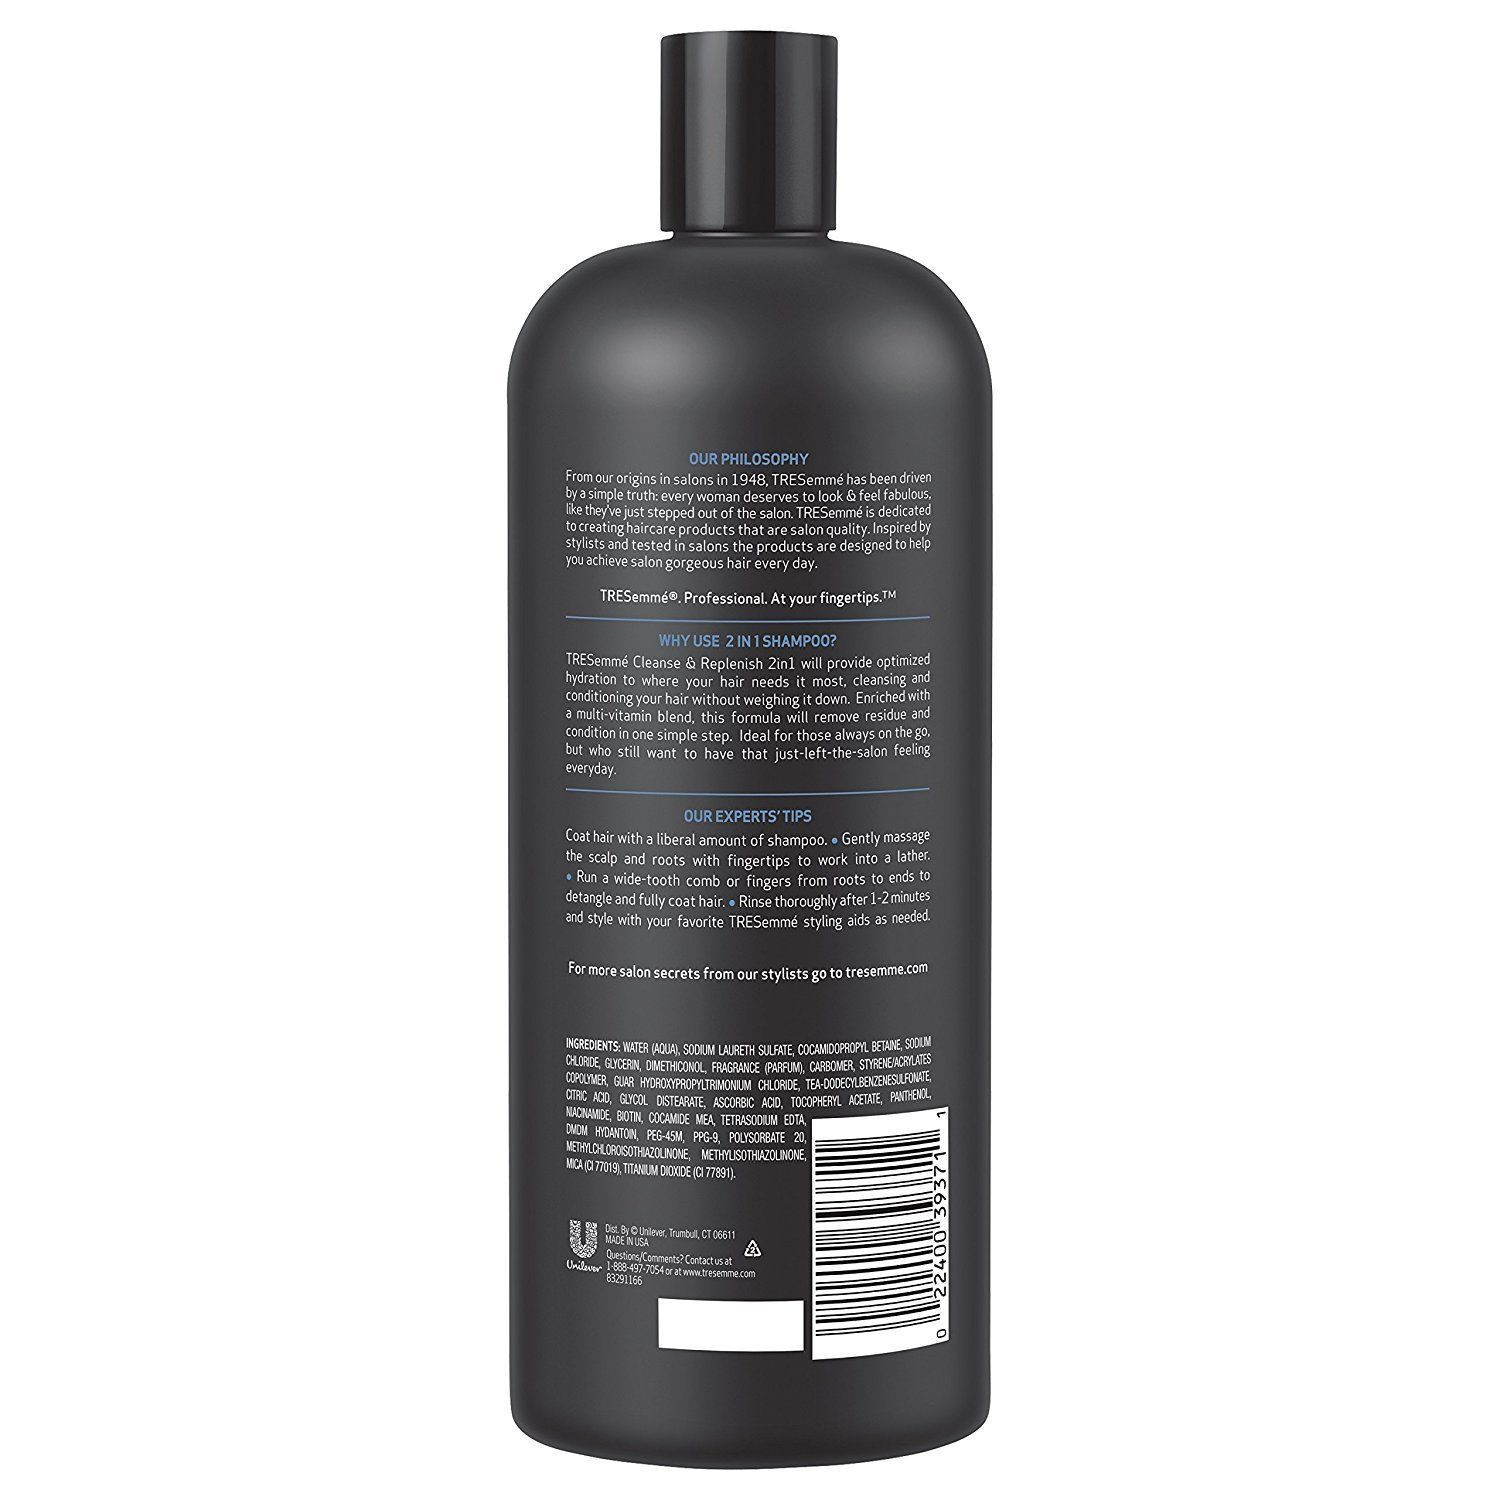 TRESemme Cleanse & Replenish 2 in 1 Shampoo Conditioner Anti-Breakage Hair 28oz